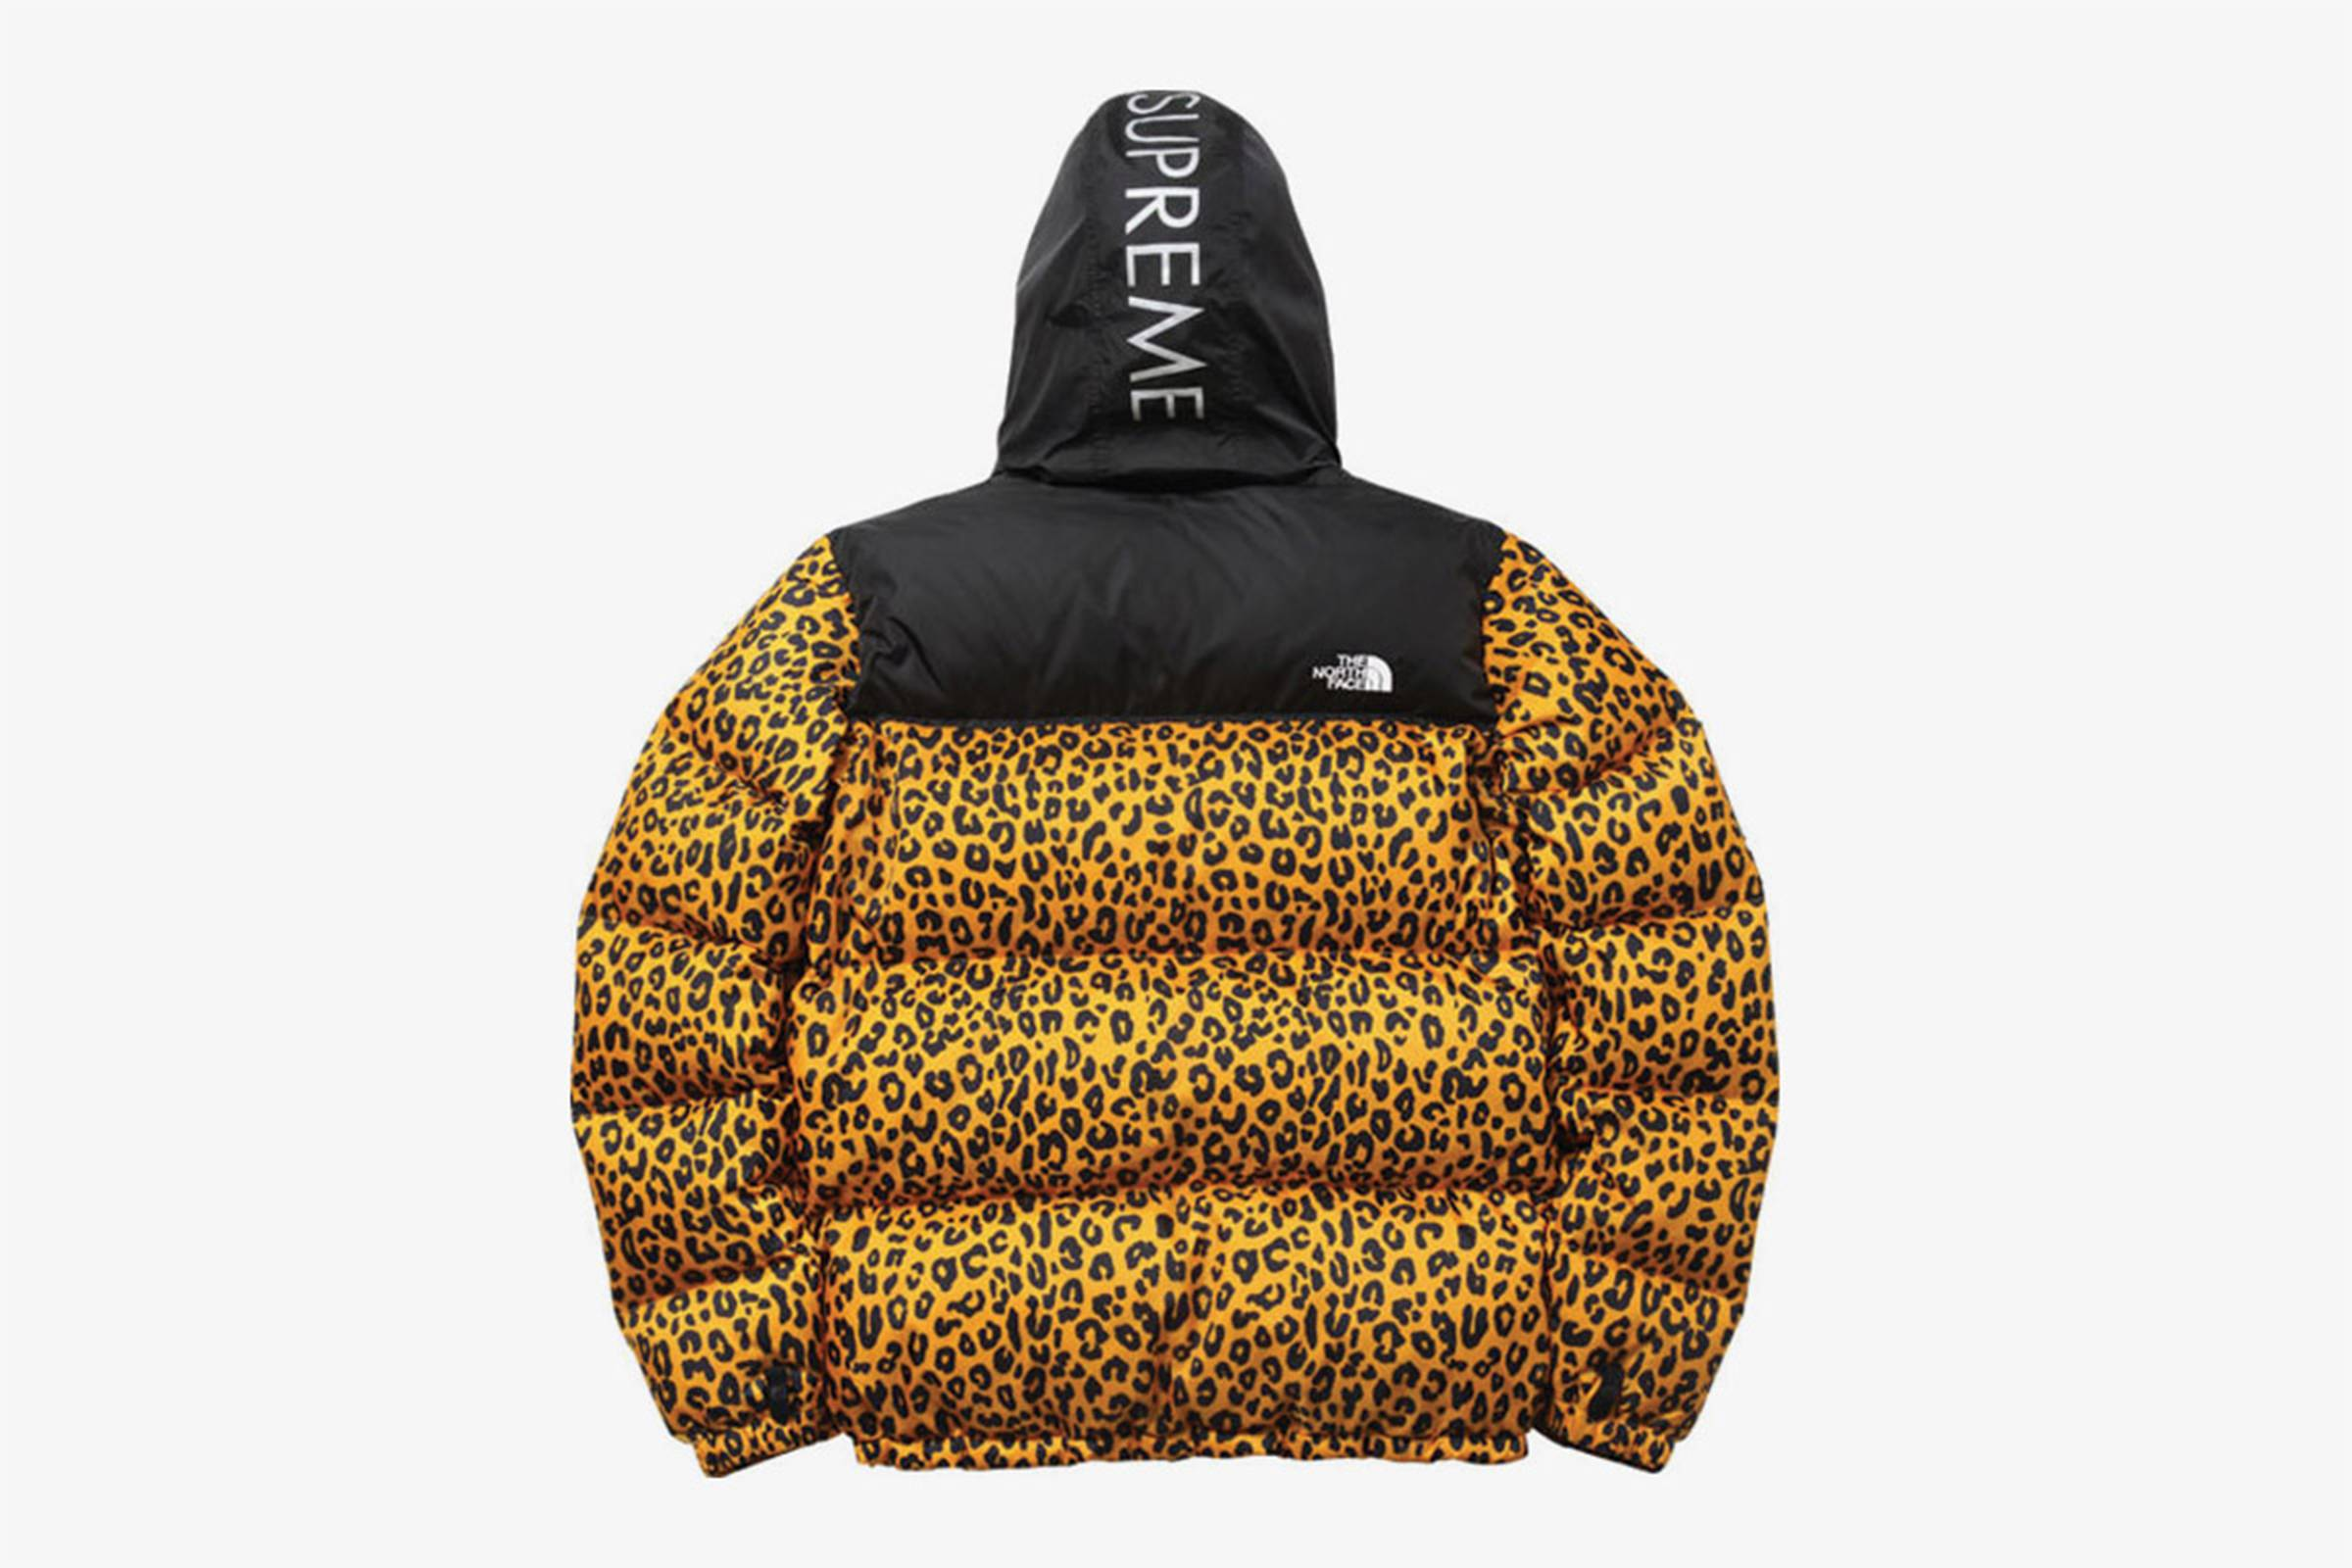 b5bc8aeb2 A Selection of Our Favorite Collaborations With The North Face | Grailed